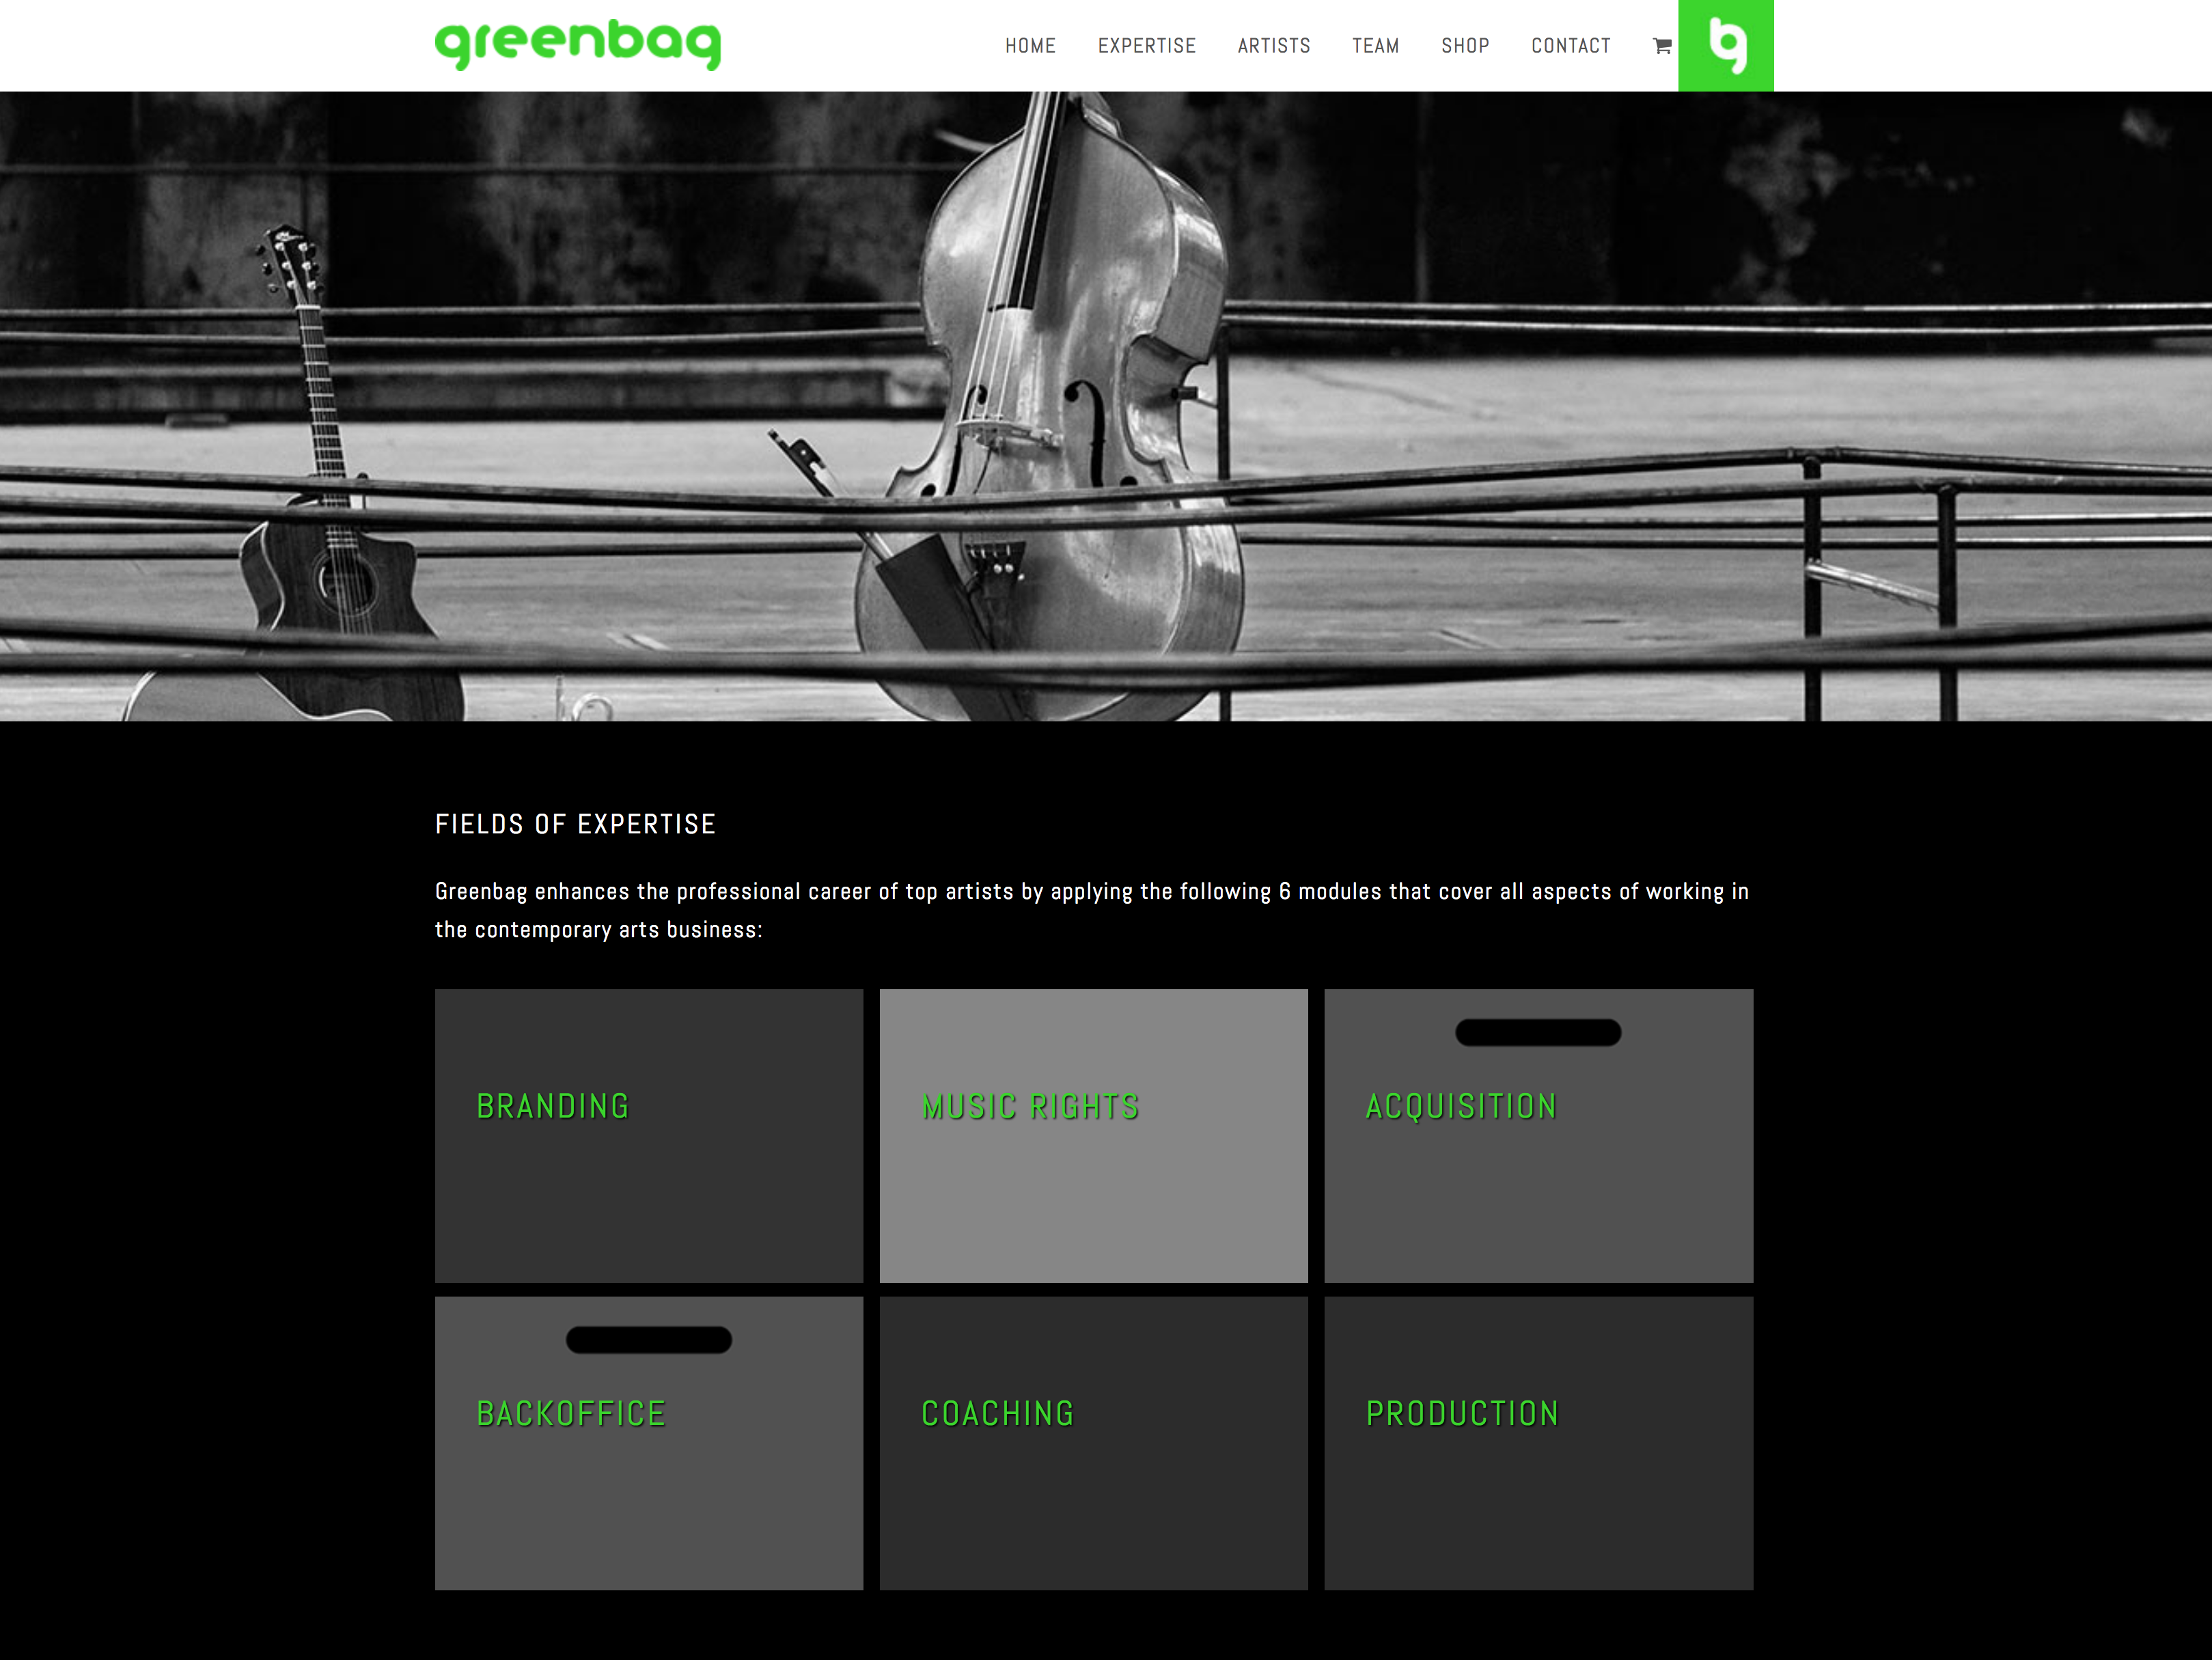 Greenbag Business services for top artists